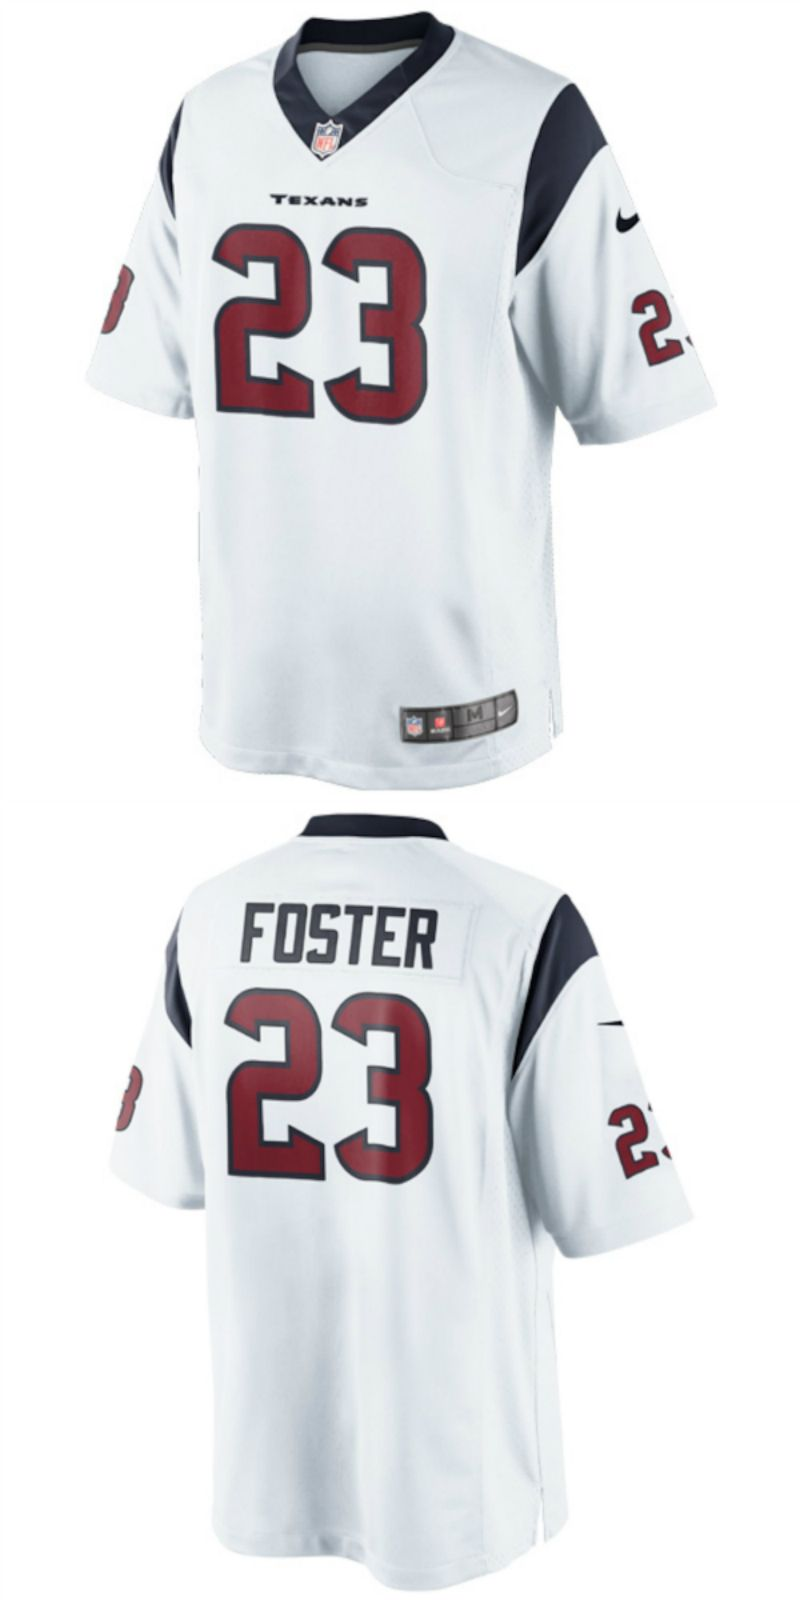 free shipping 5226f 2a351 UP TO 70% OFF. Arian Foster Houston Texans Nike Limited ...